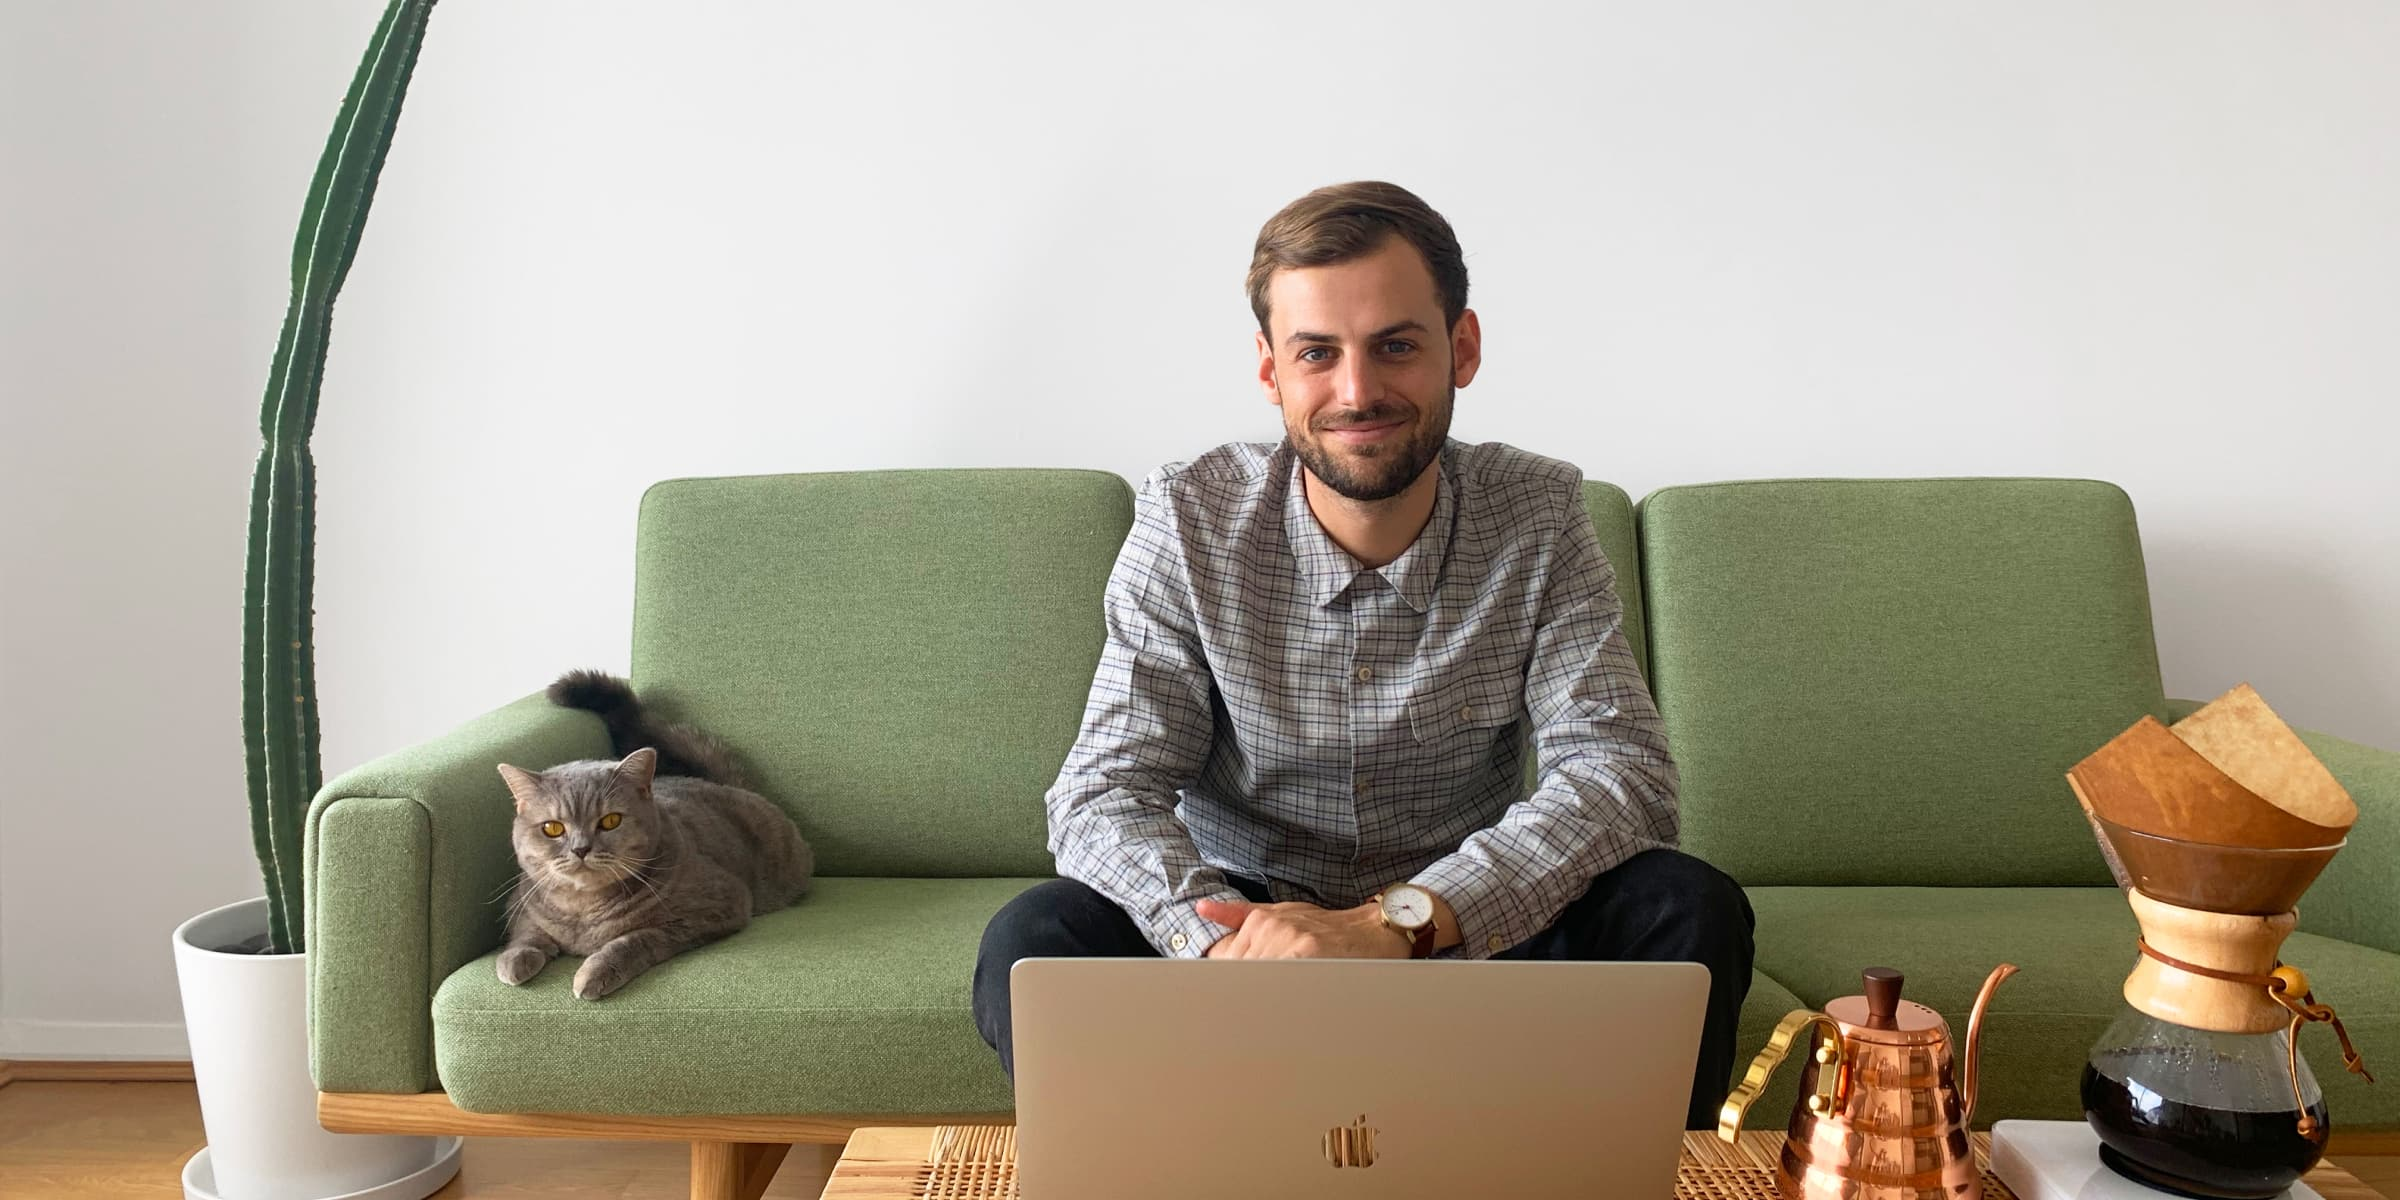 Product UX/UI Designer, Jordan Hughes, sitting on couch